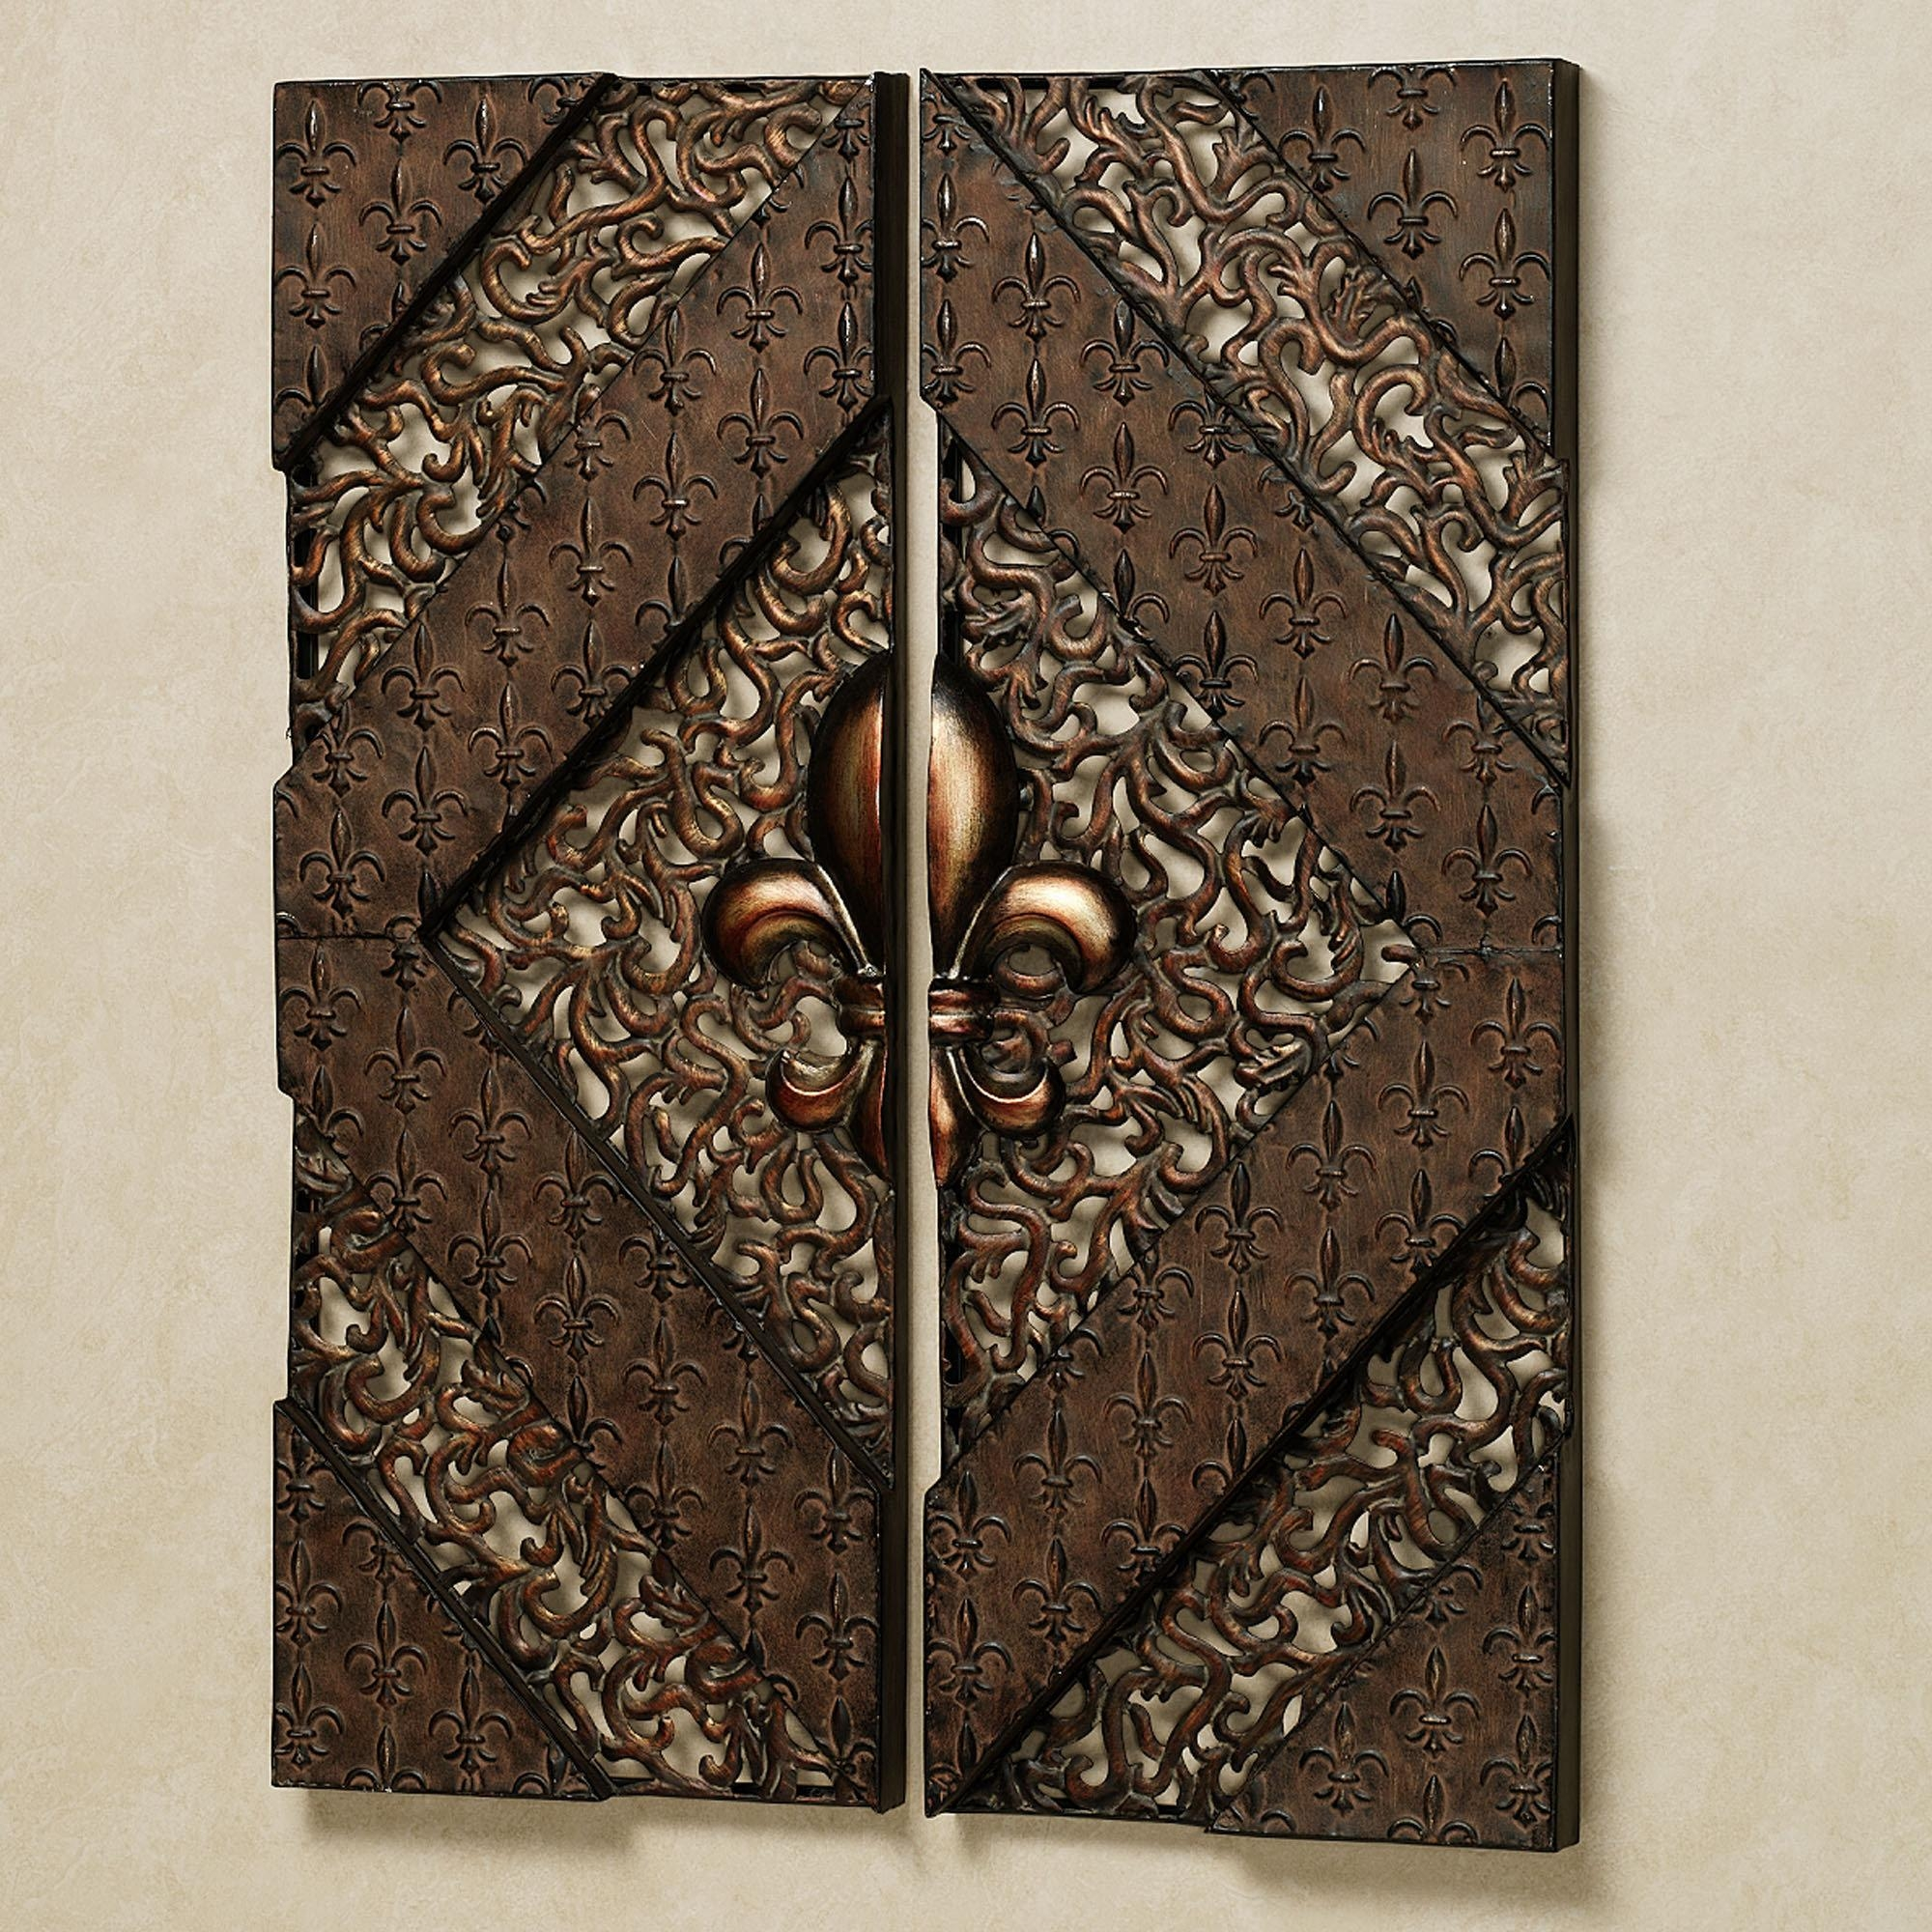 Fleur De Lis Metal Wall Decor Wood : Fleur De Lis Metal Wall Decor  Throughout Wood